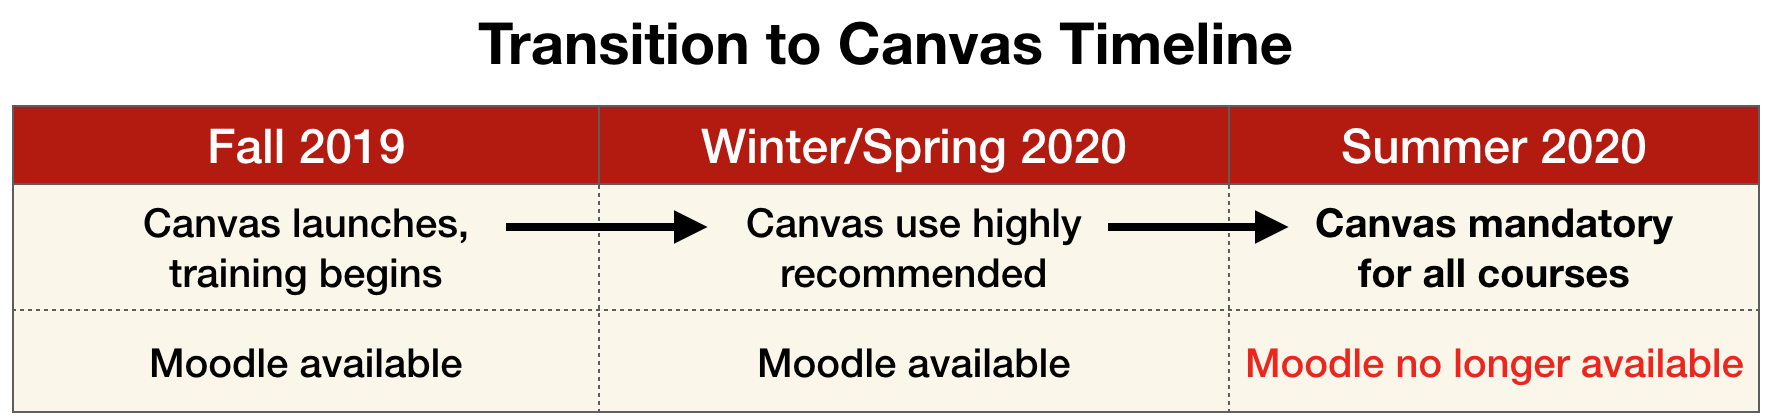 Transition to Canvas Timeline